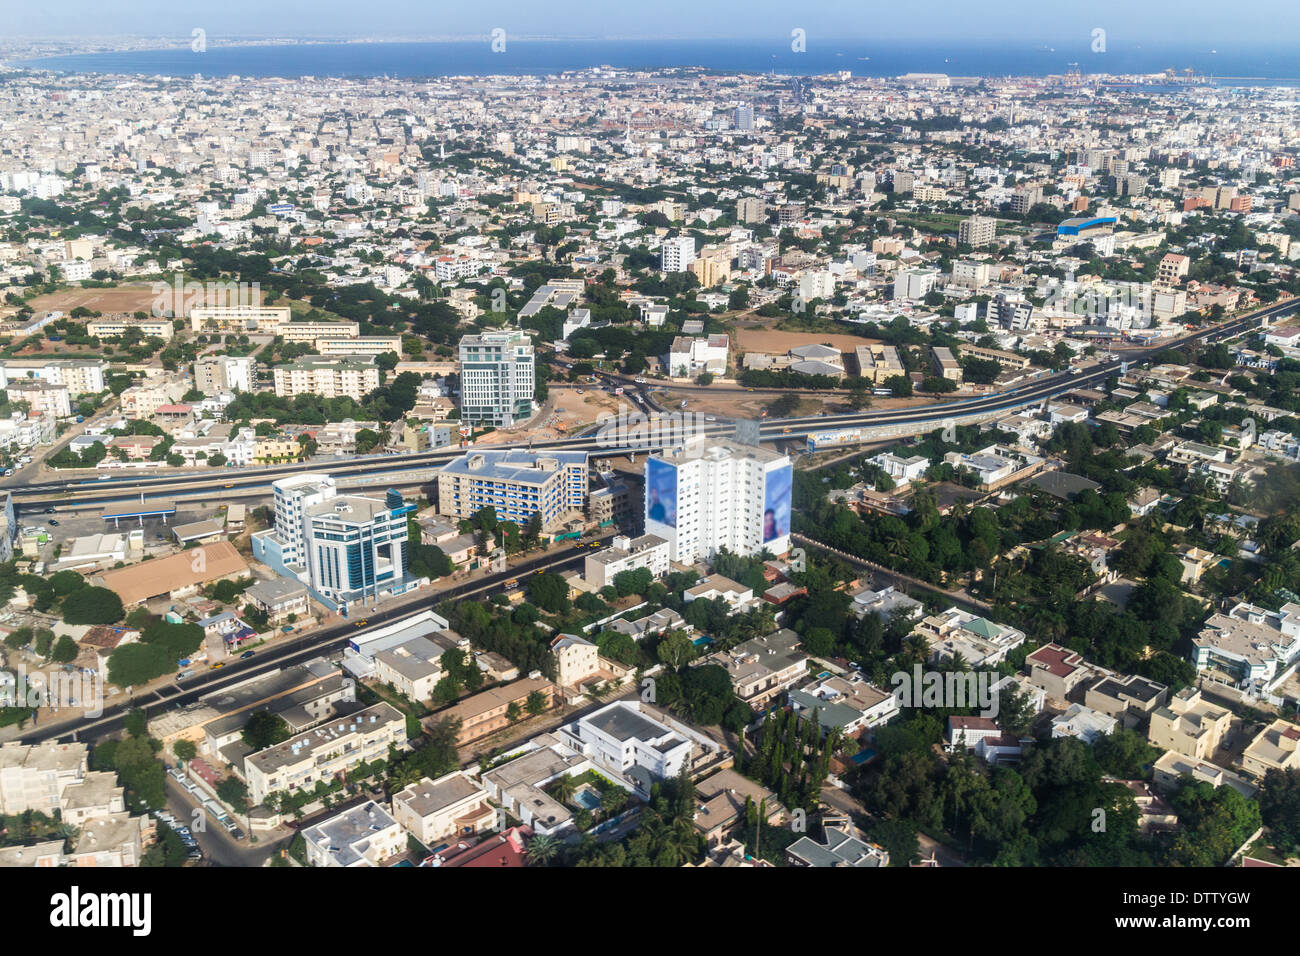 Aerial view of the city of Dakar, Senegal, showing the densely packed buildings and a highway - Stock Image